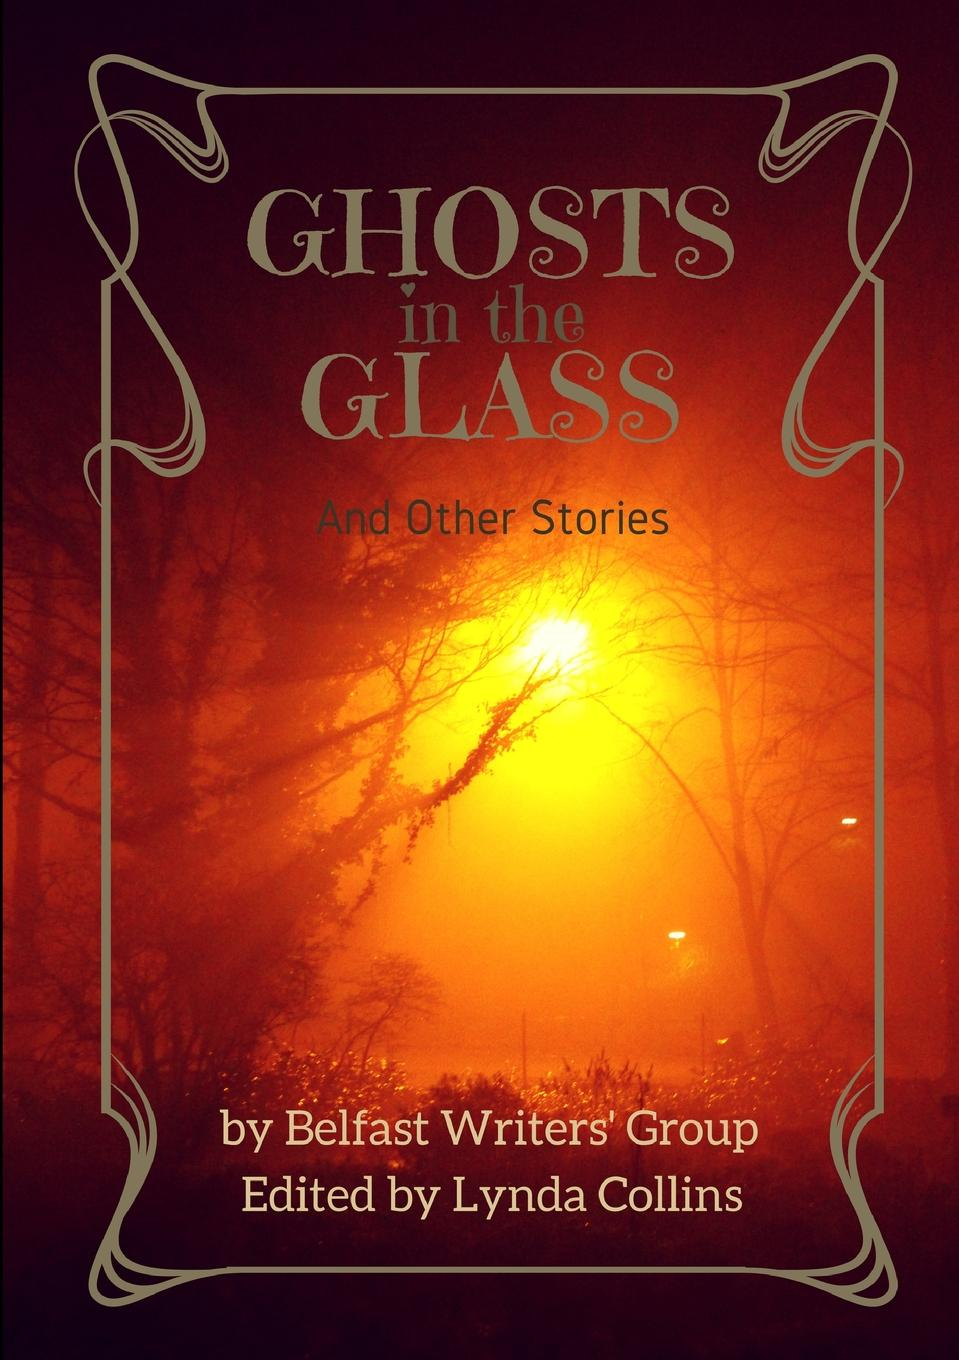 Lynda Collins, Jo Zebedee, M. Rush Ghosts in the Glass and Other Stories mhu 4 flying fiends and grues